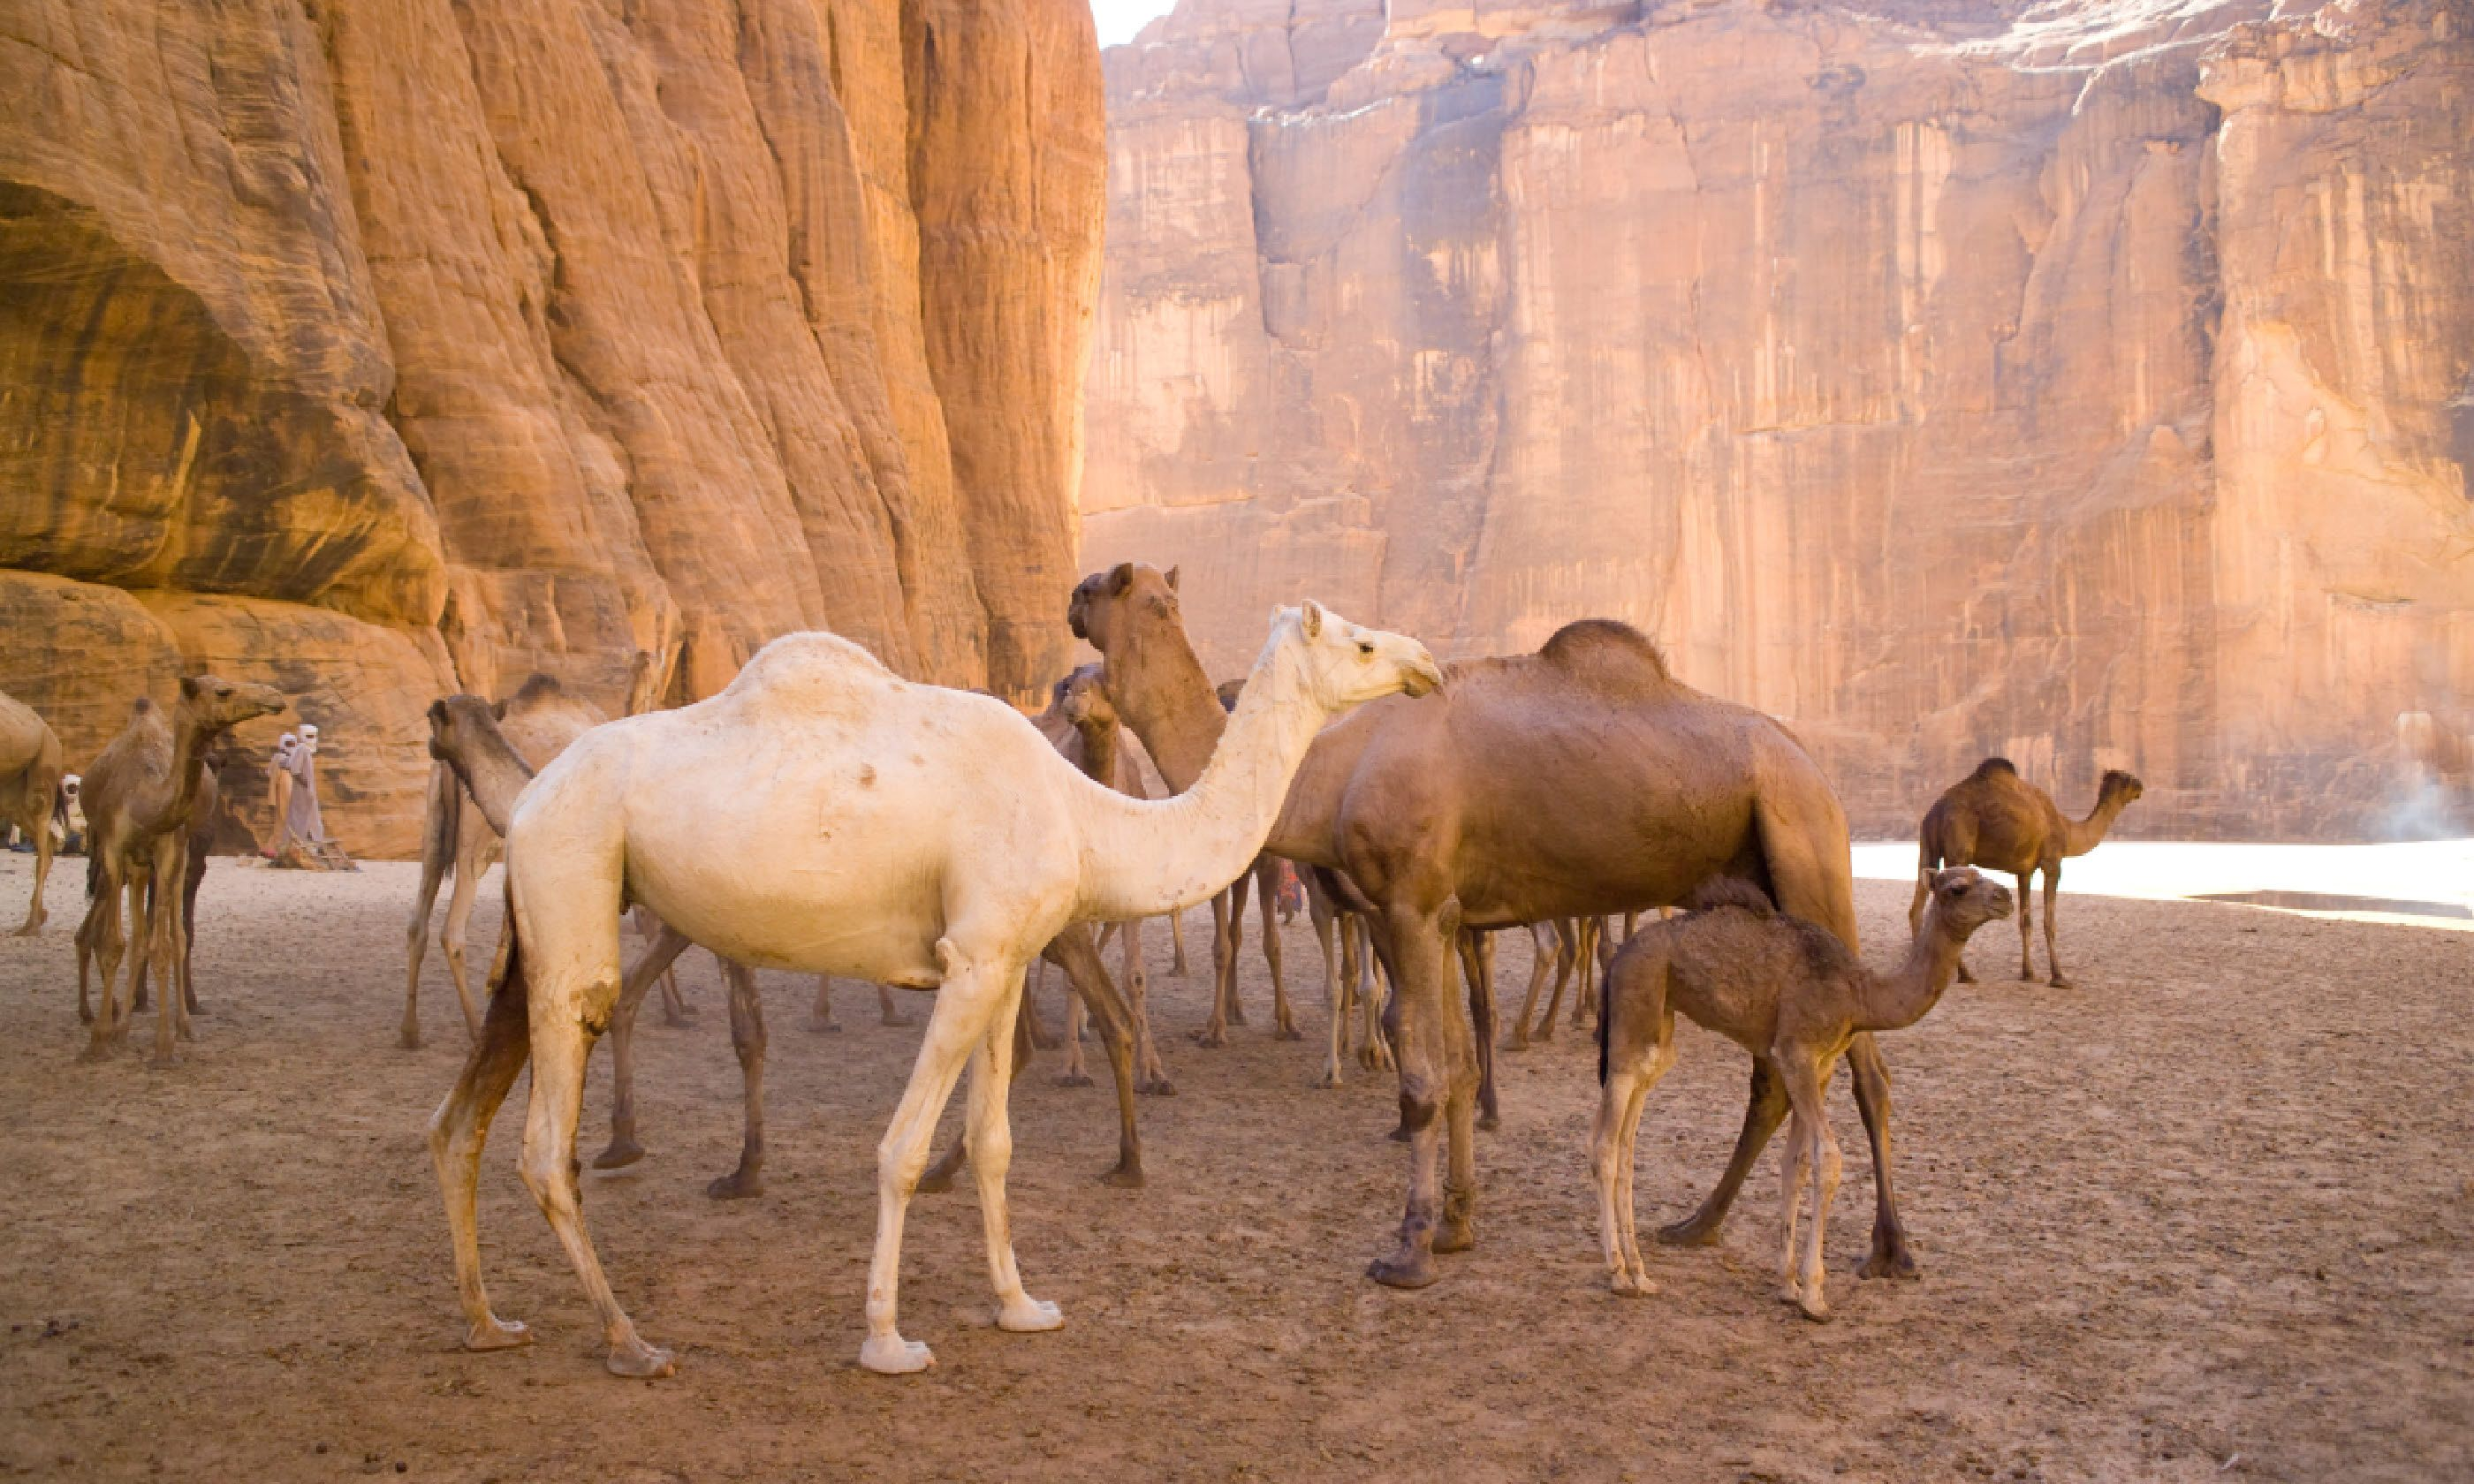 Camels in Chad (Dreamstime)